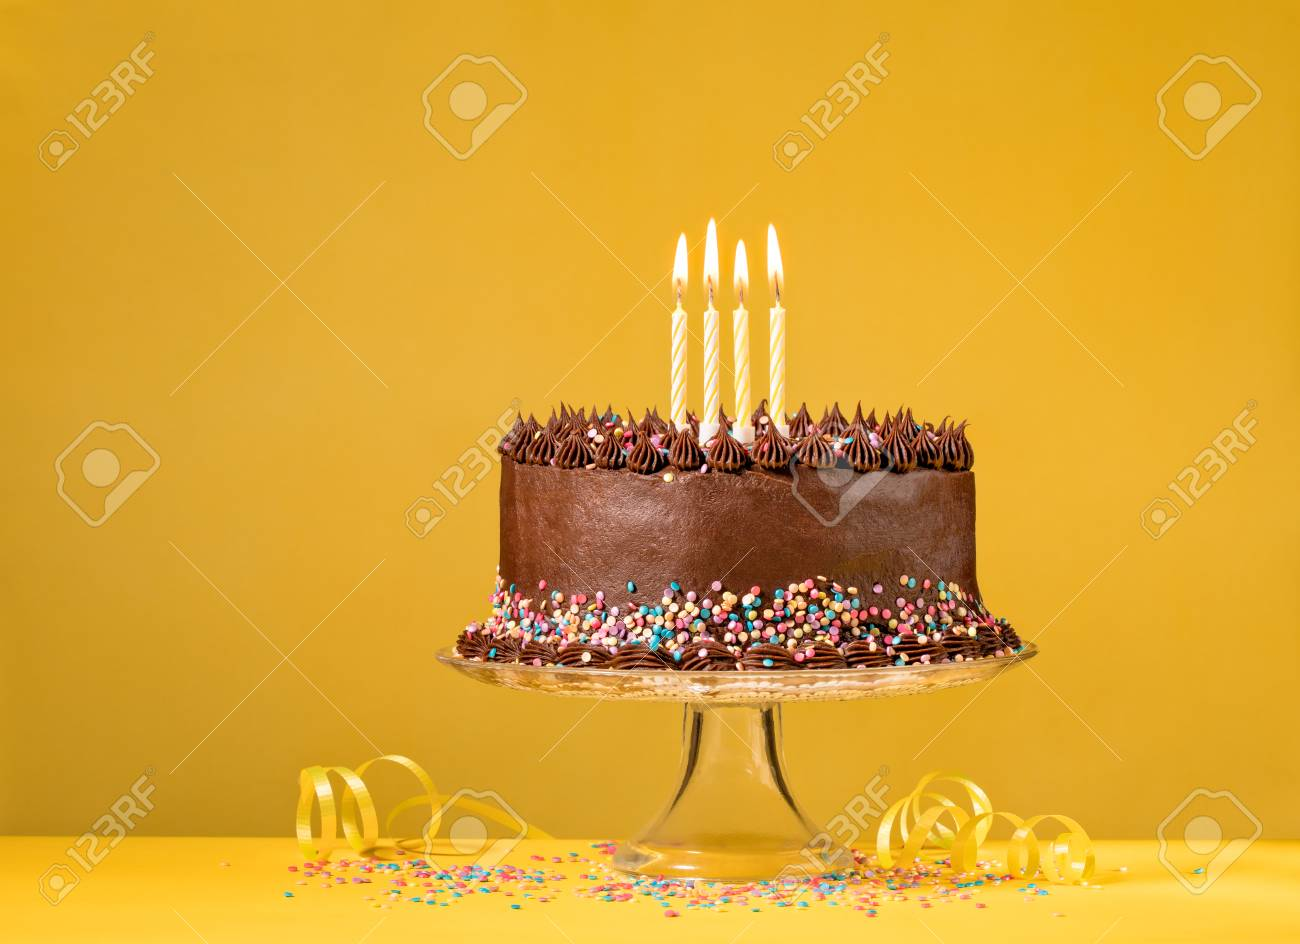 Chocolate Birthday Cake With Colorful Sprinkles And Candles Over Yellow Background Stock Photo